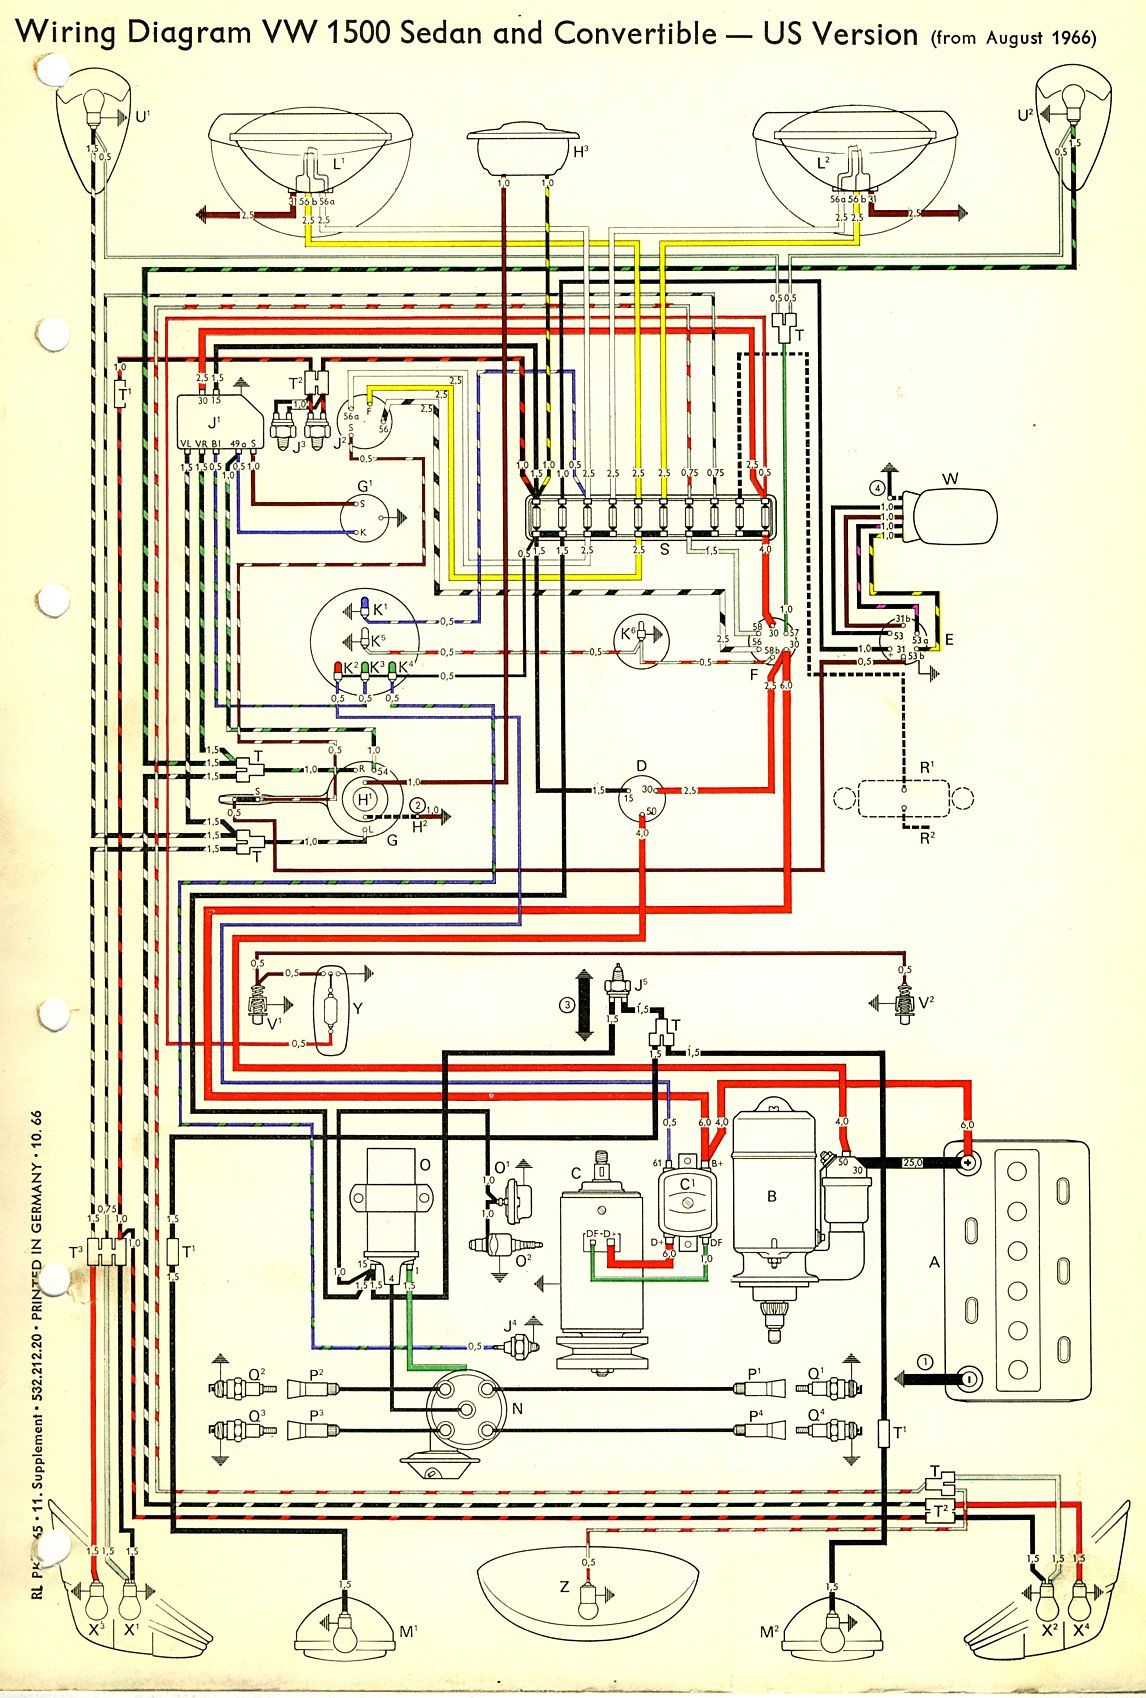 1967 Beetle Wiring Diagram (USA) | TheGoldenBug.com Vw Pointer, Vw Trike